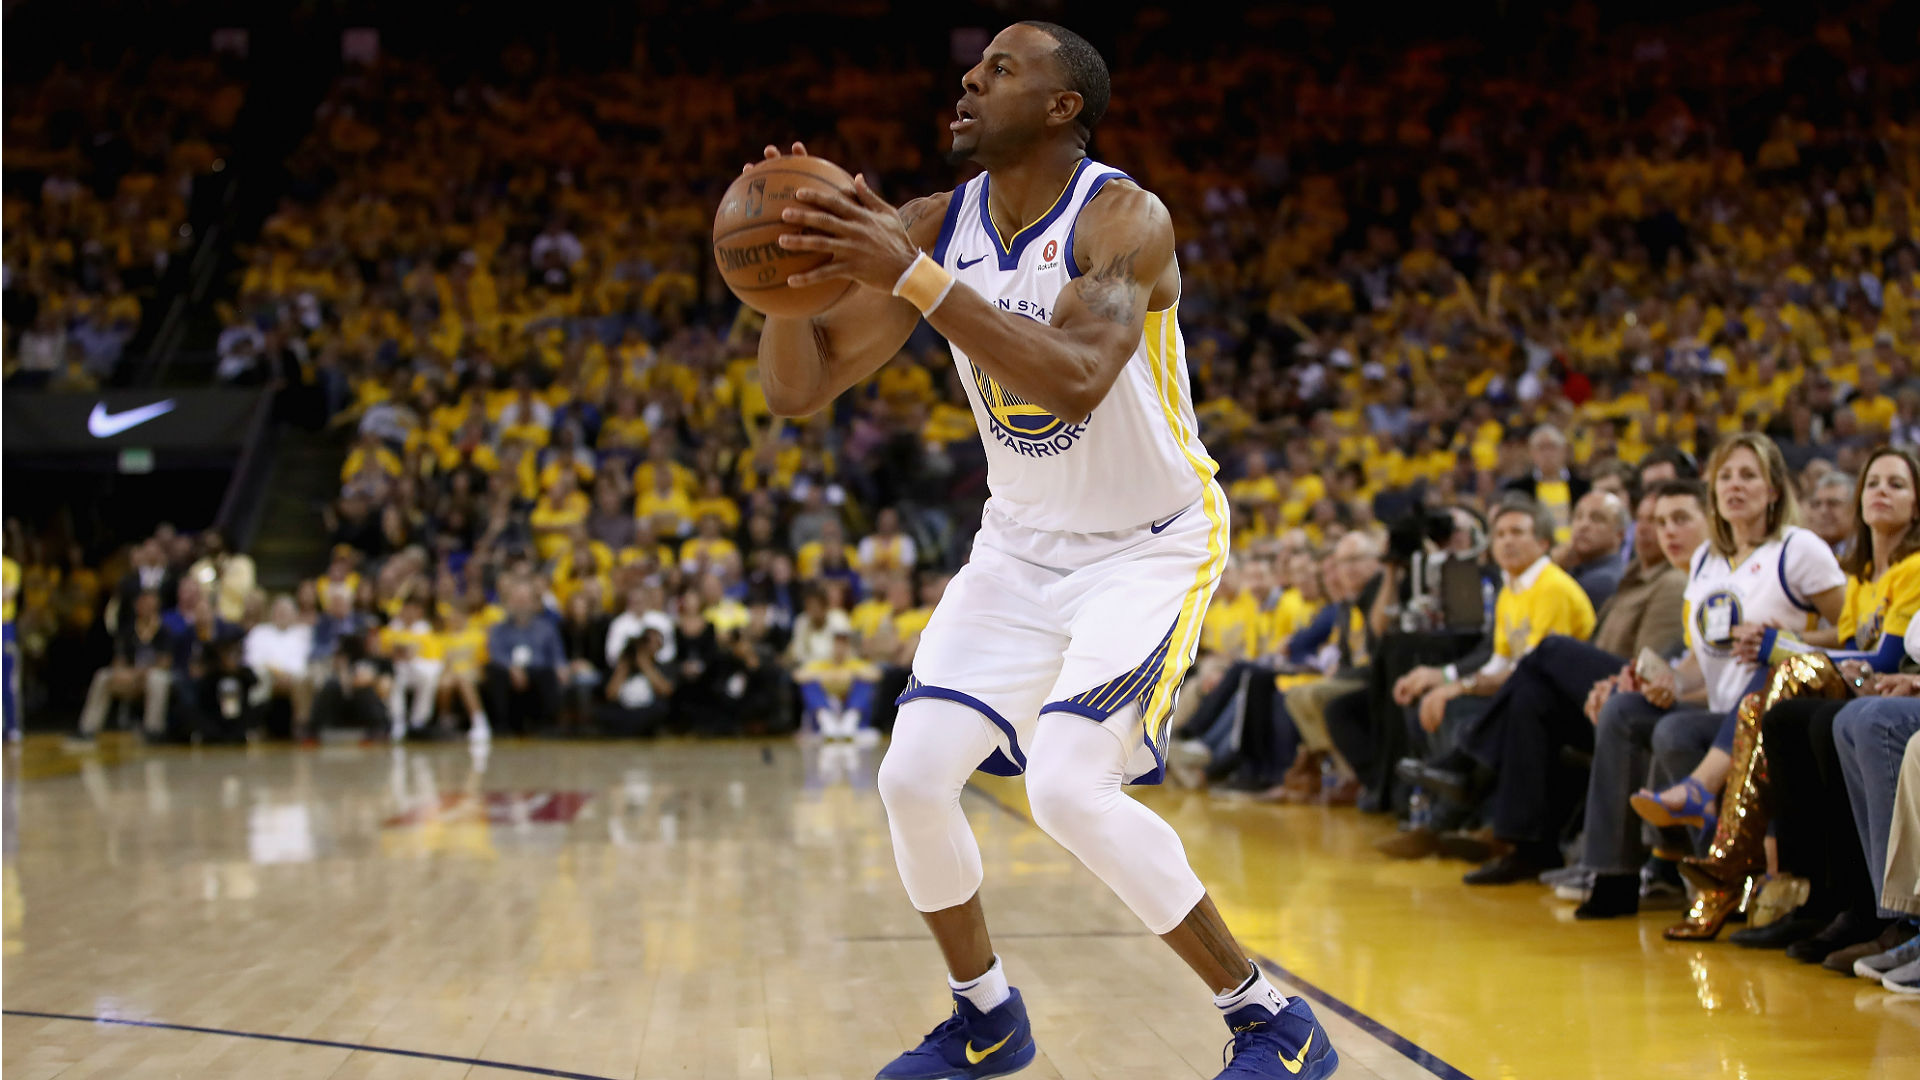 Andre Iguodala upgraded to questionable for Game 3 vs. Cavs